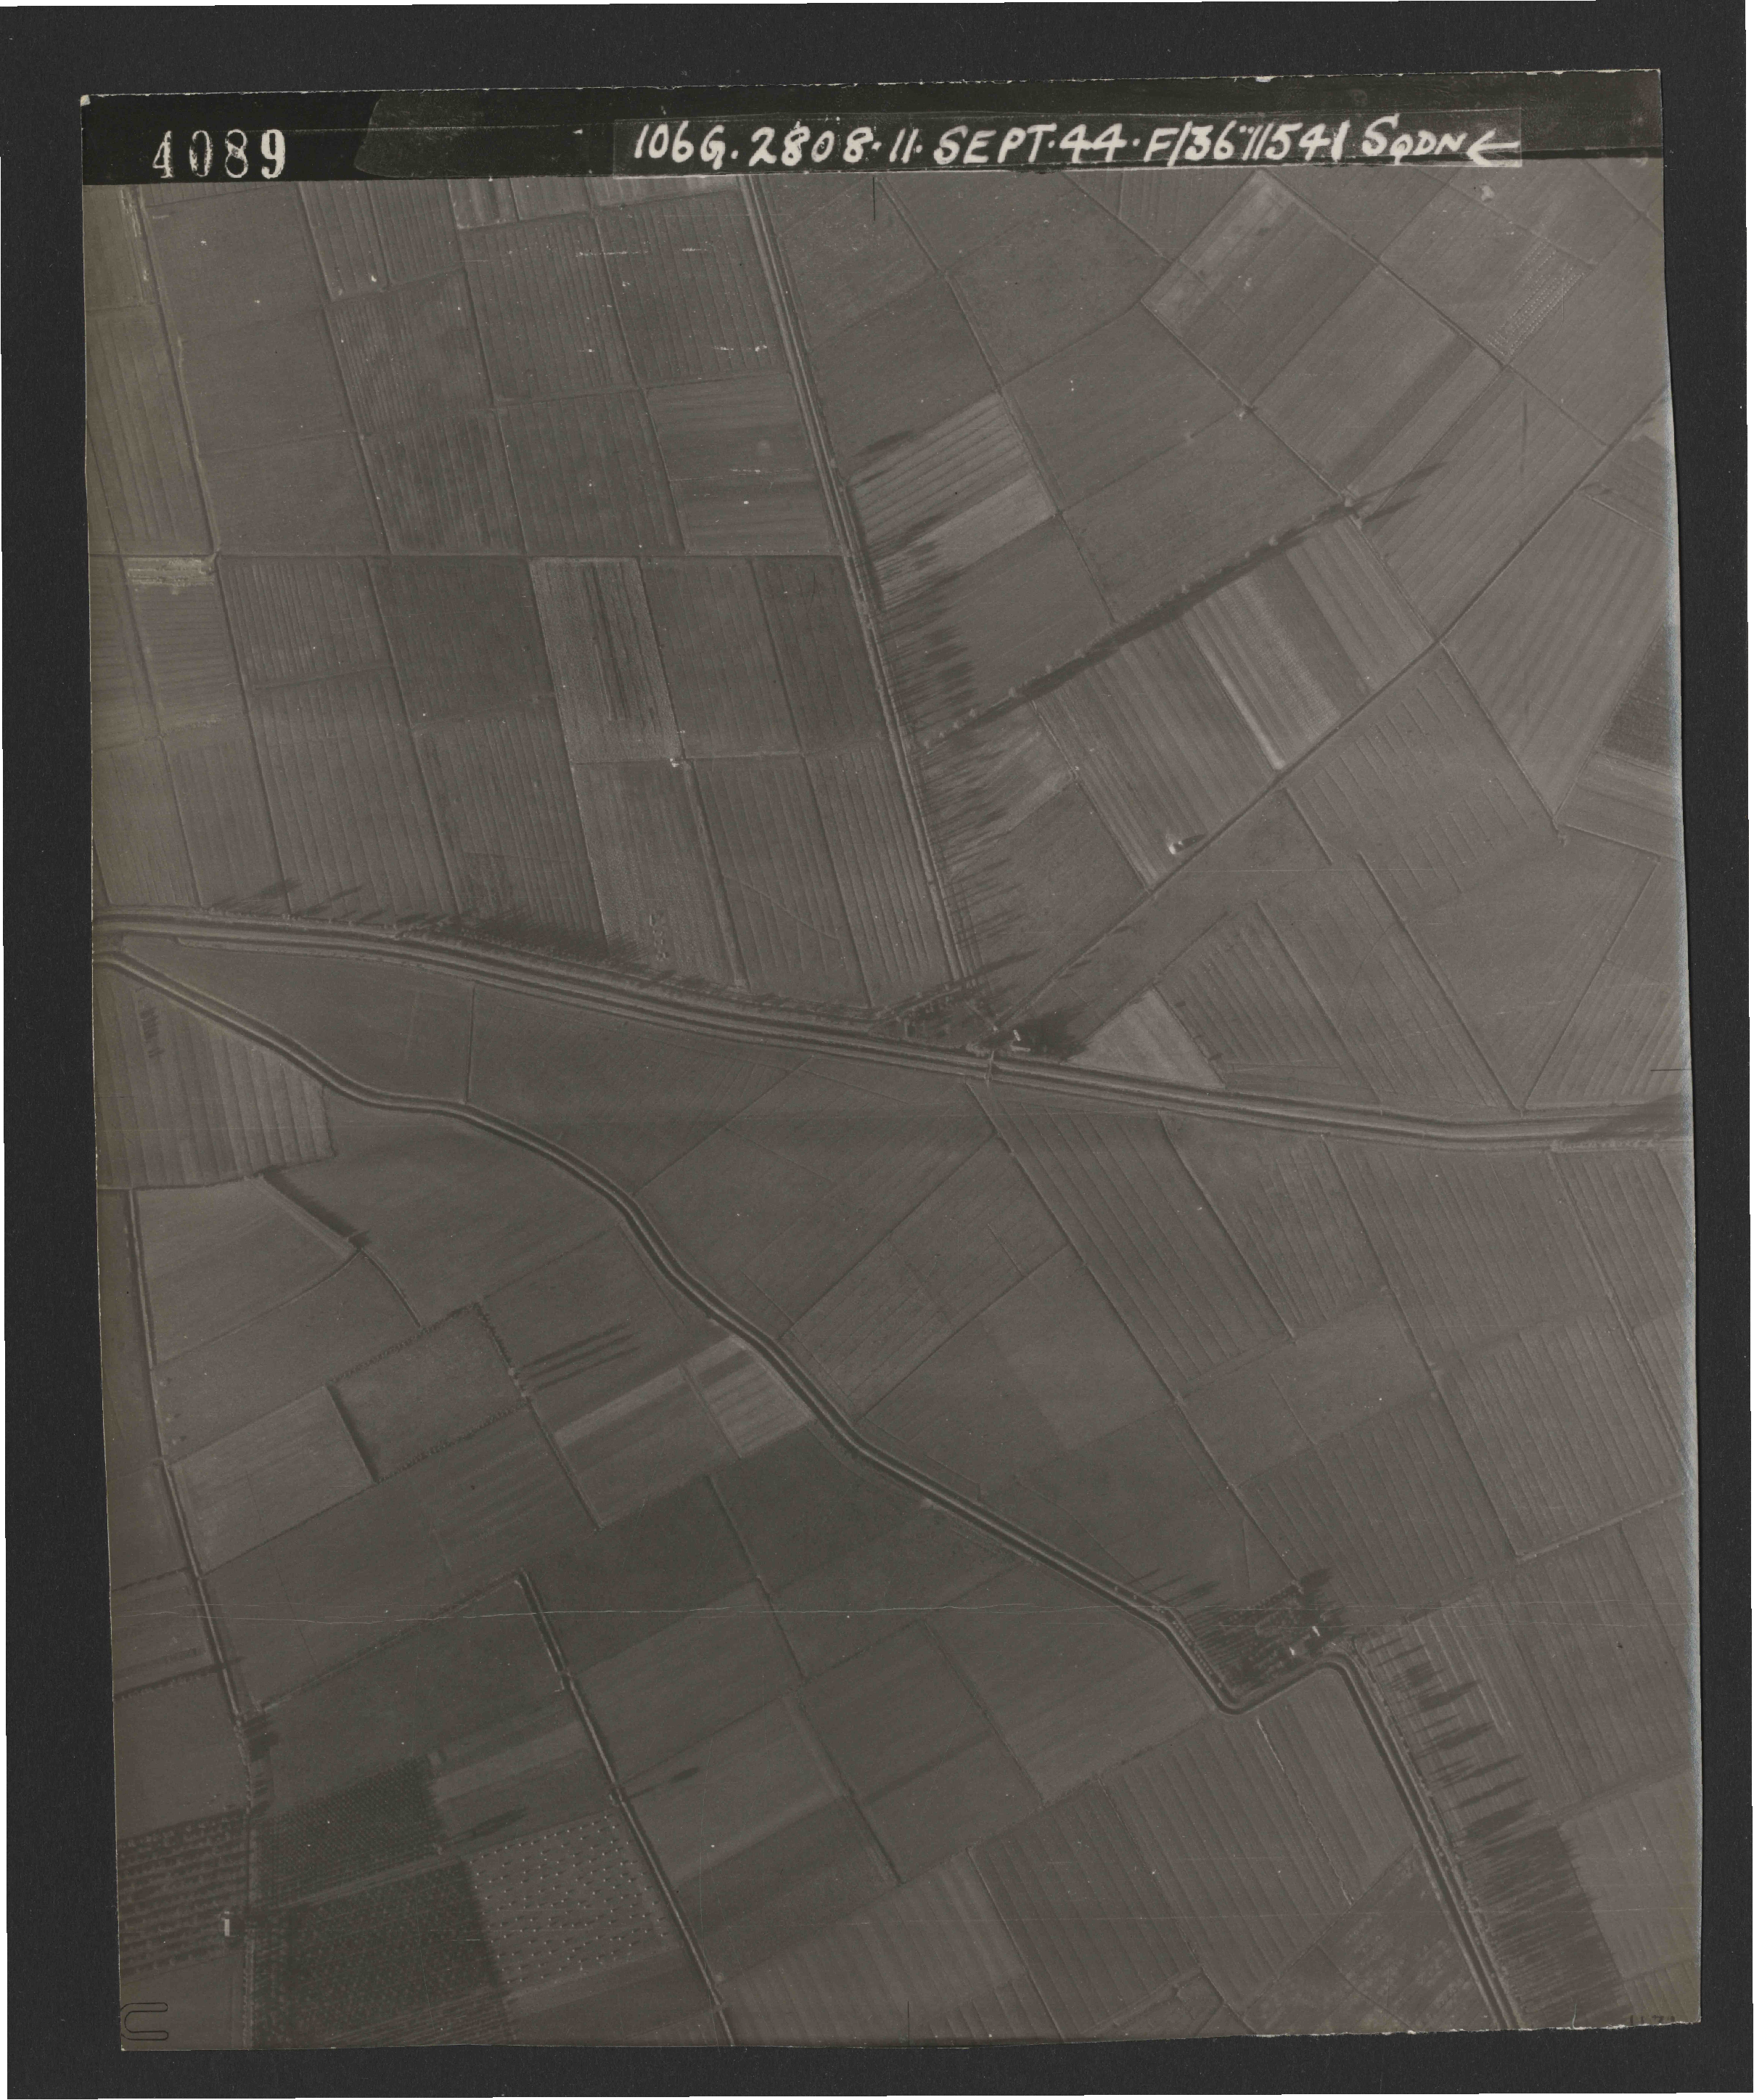 Collection RAF aerial photos 1940-1945 - flight 312, run 03, photo 4089